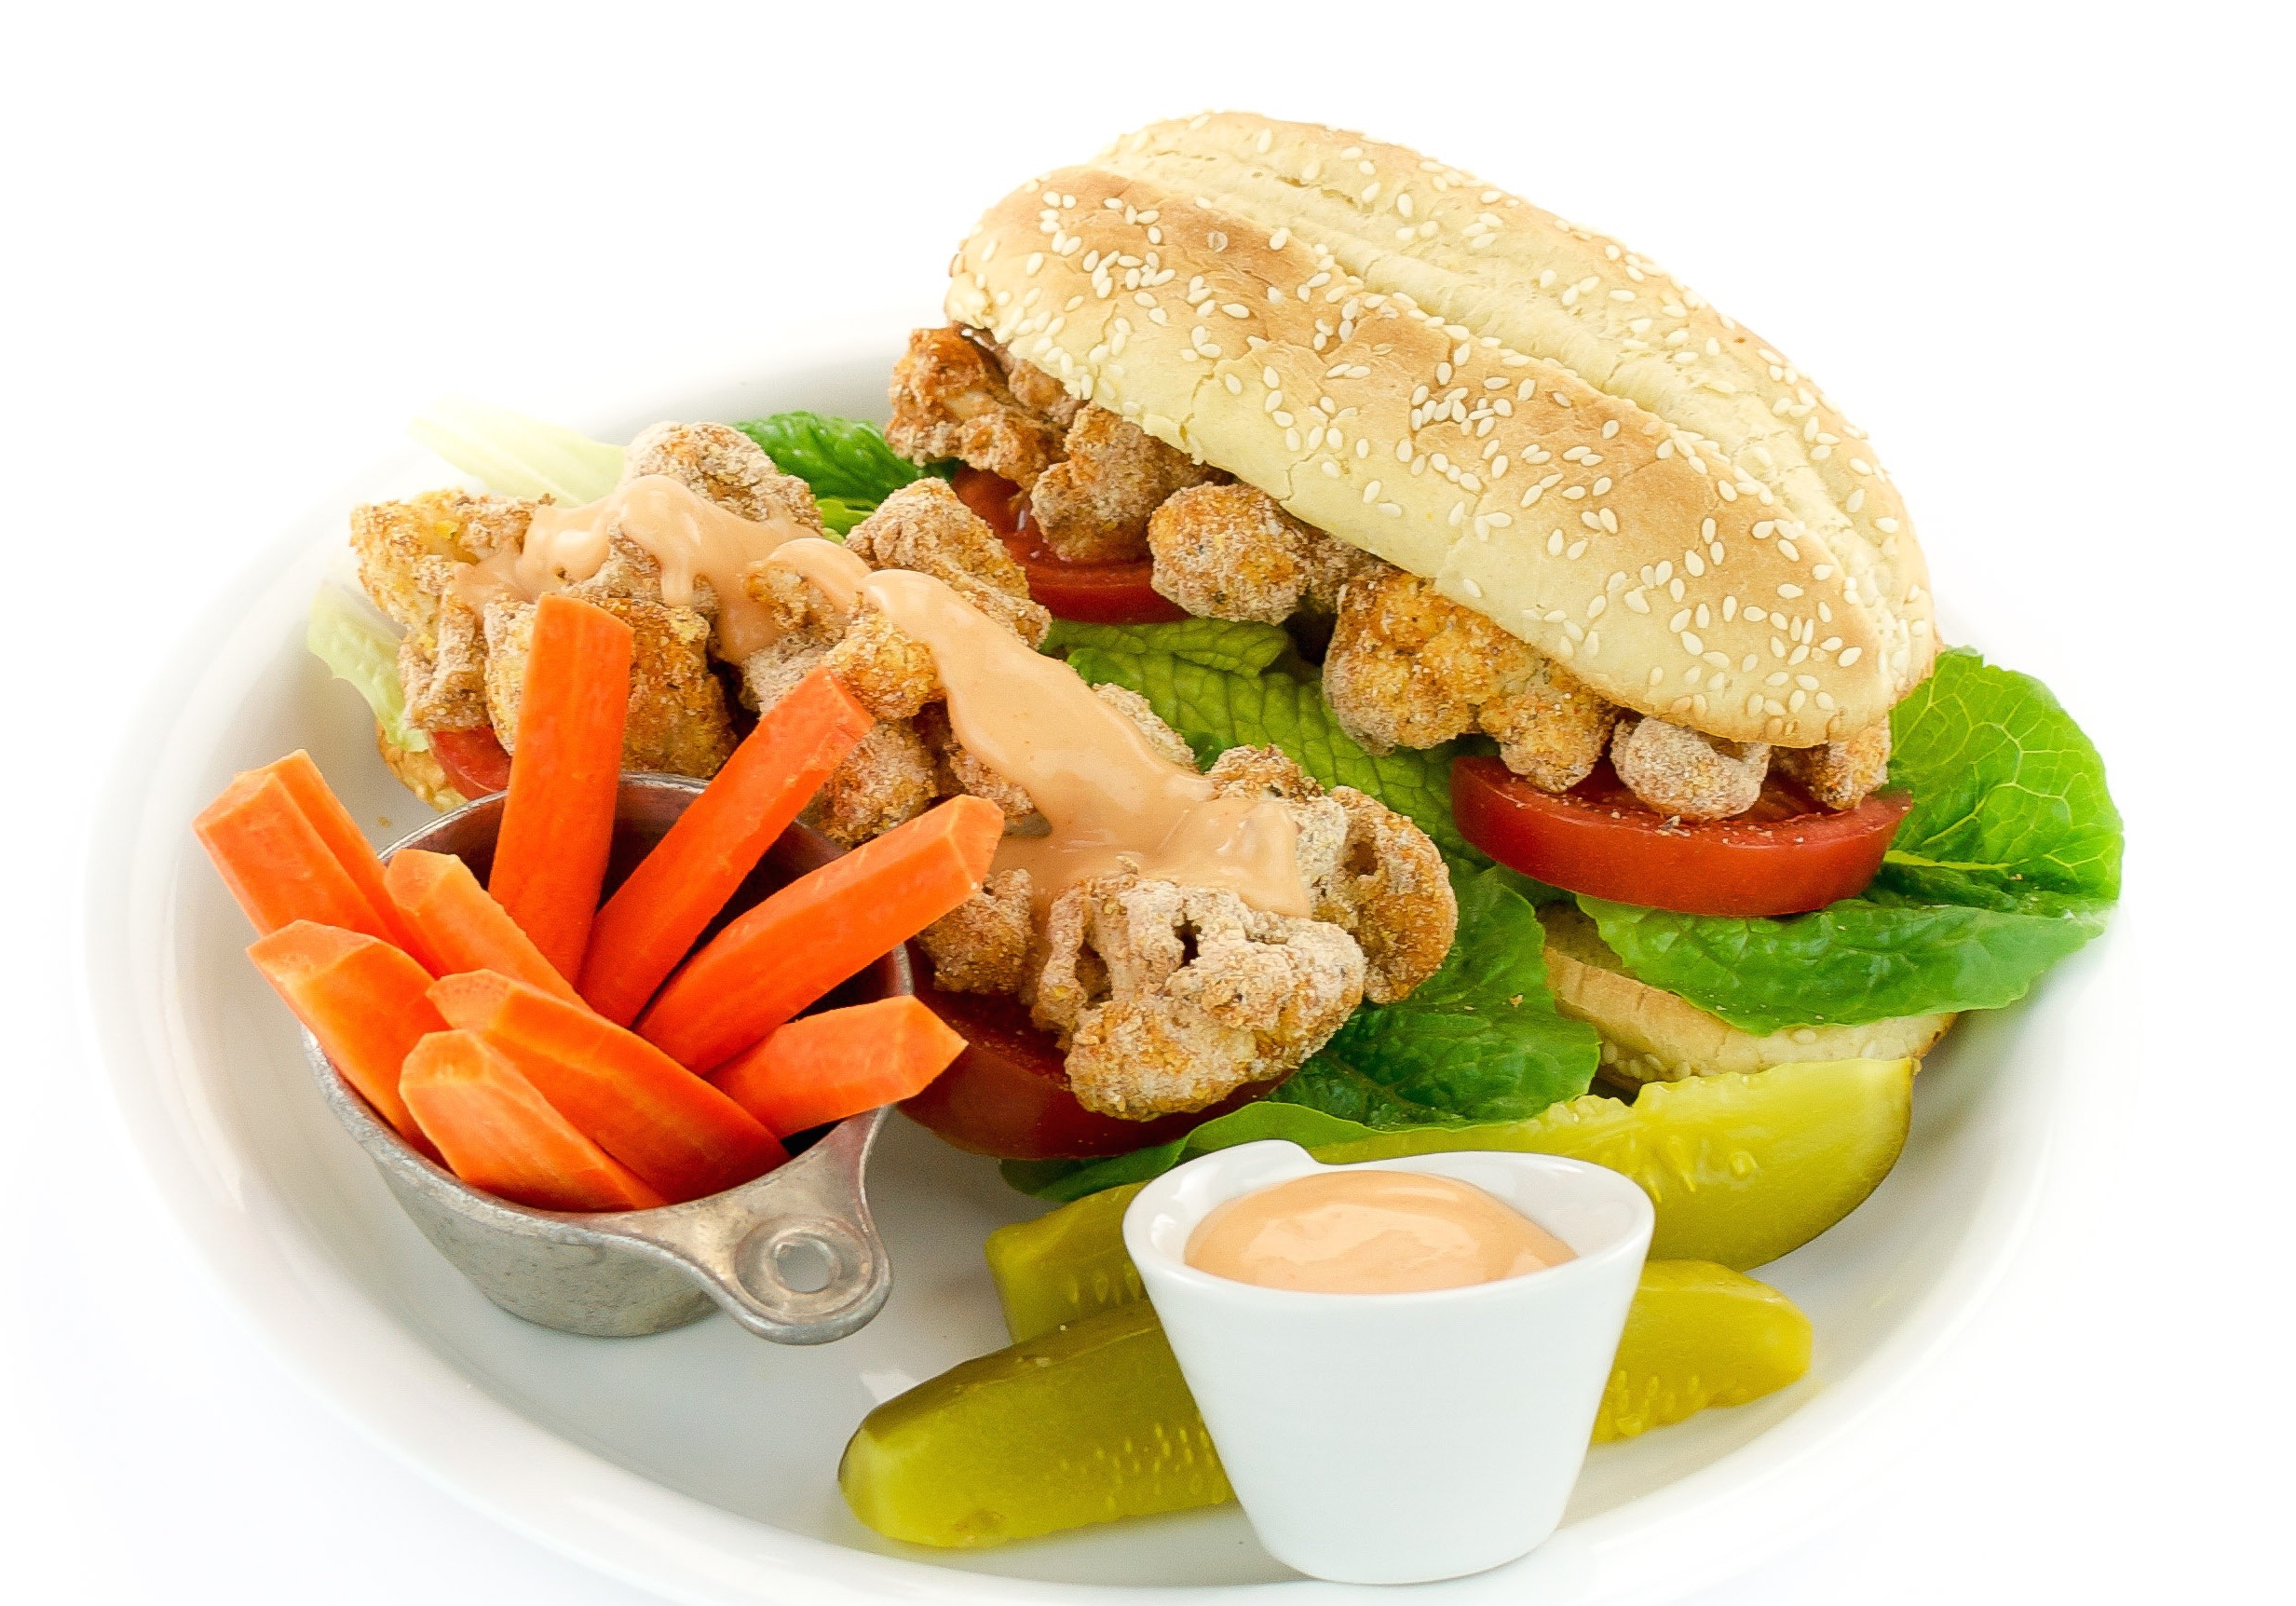 Spicy (or not) Cauliflower Po'Boy by Kathy Hestor